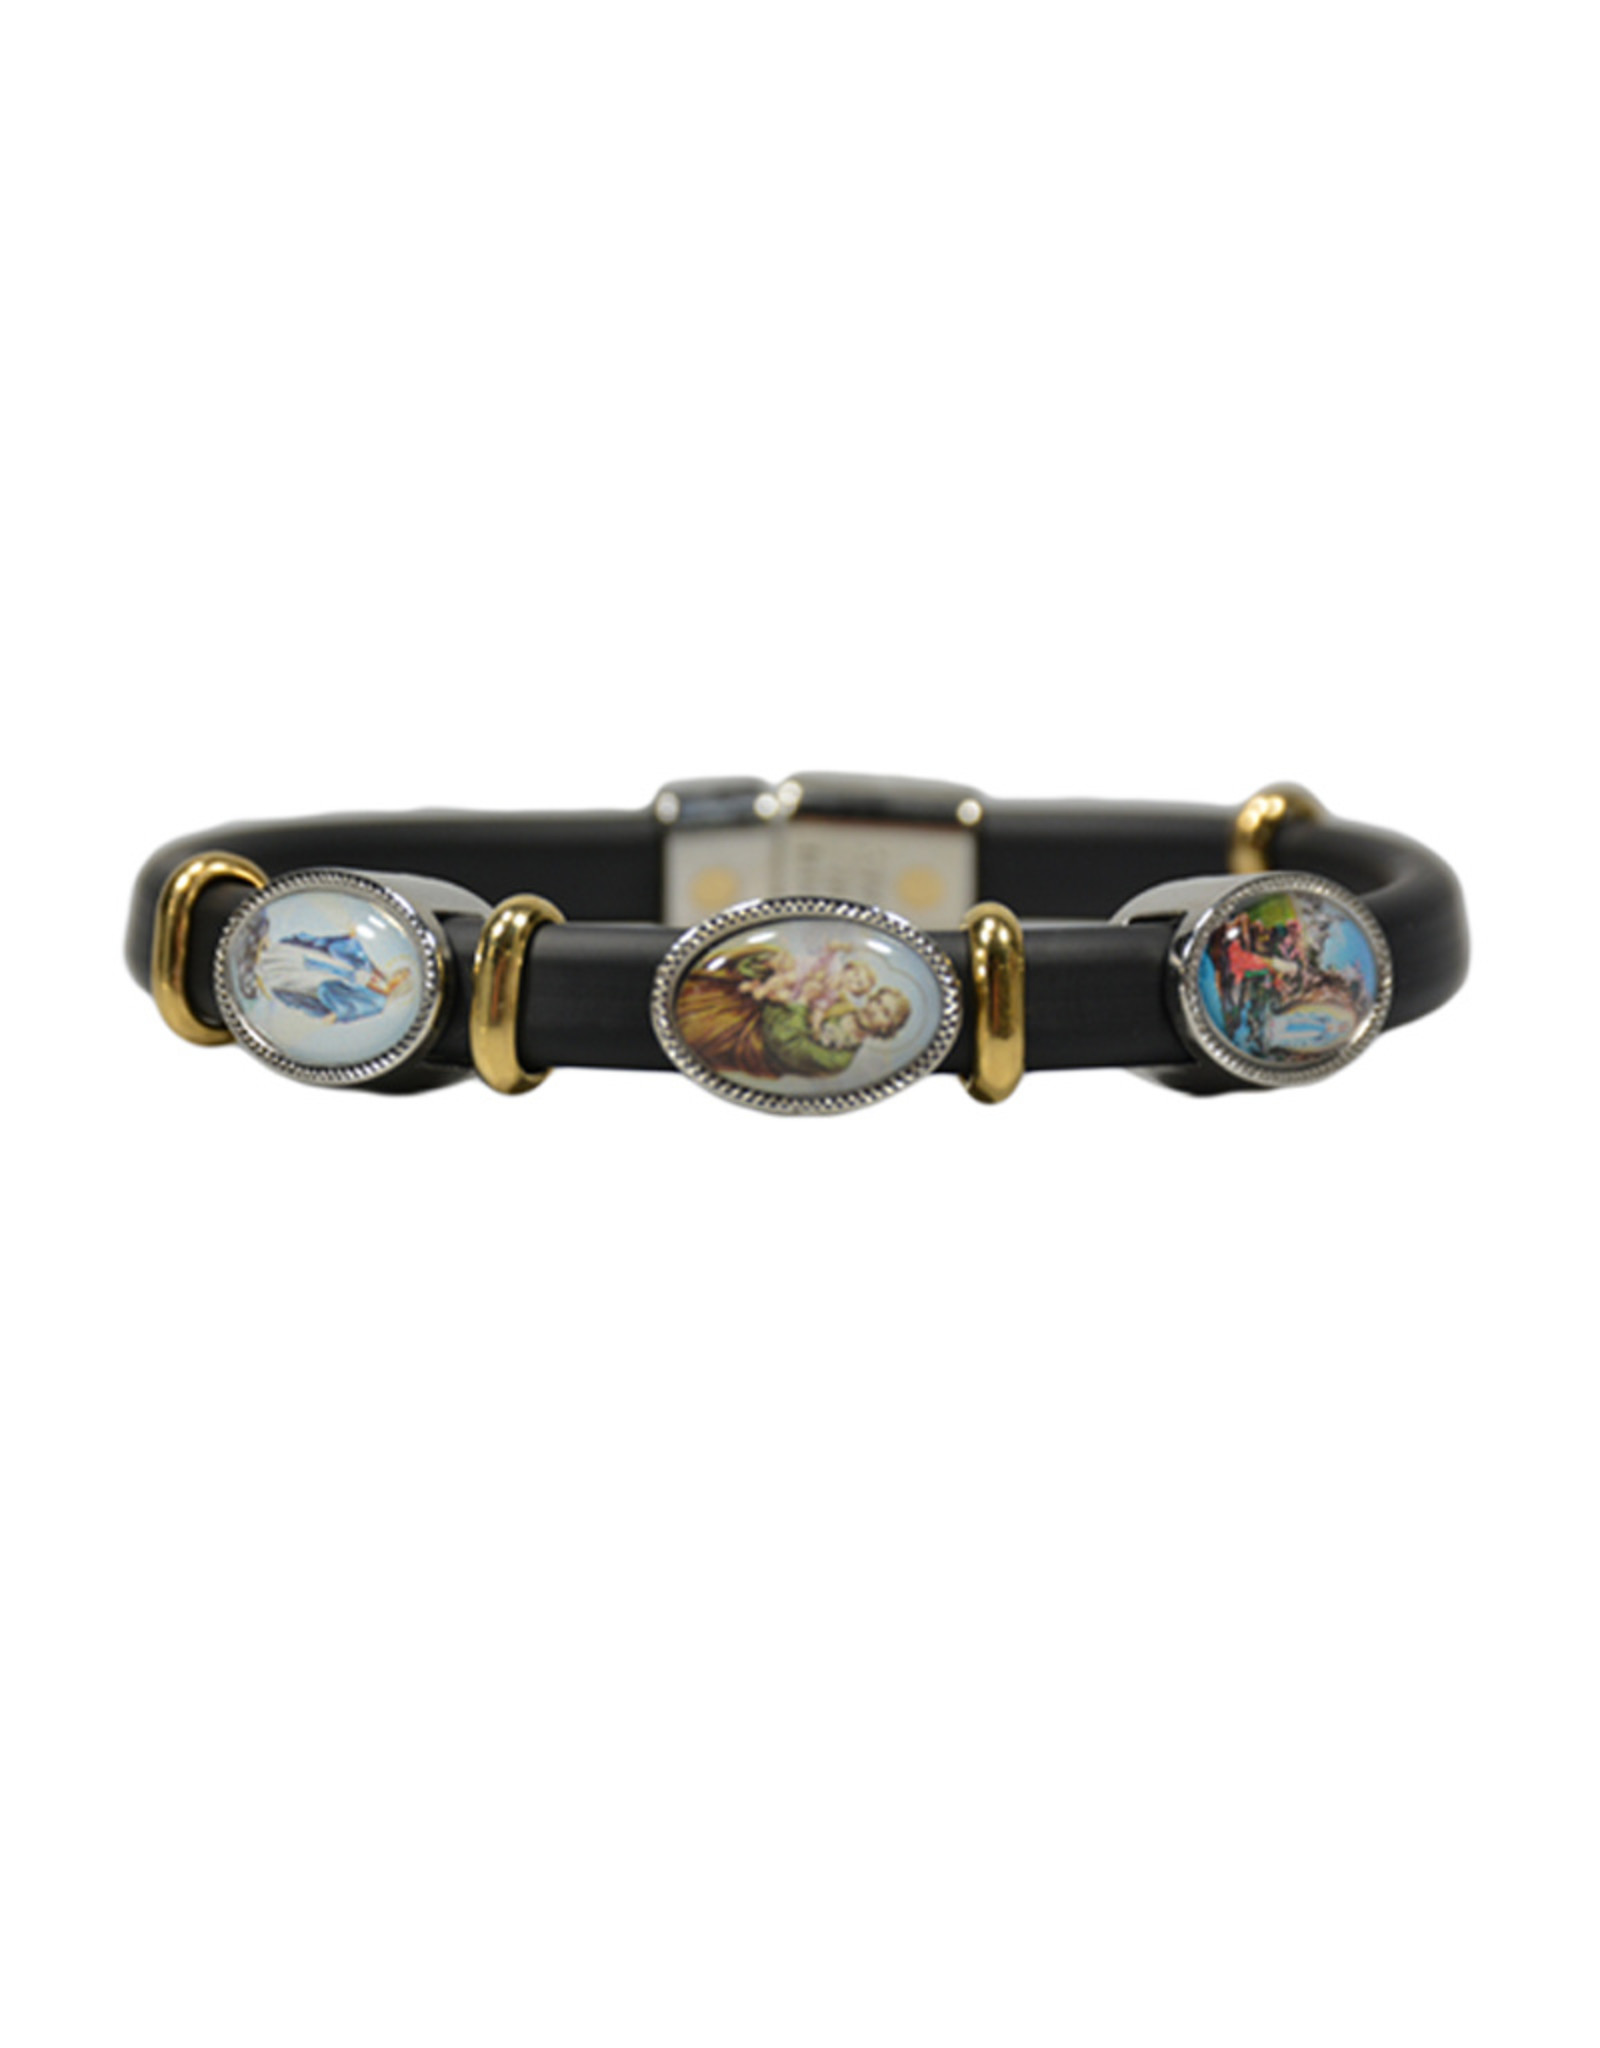 Saint Joseph, Miraculous Virgin Mary and O.L. of Lourdes bracelet